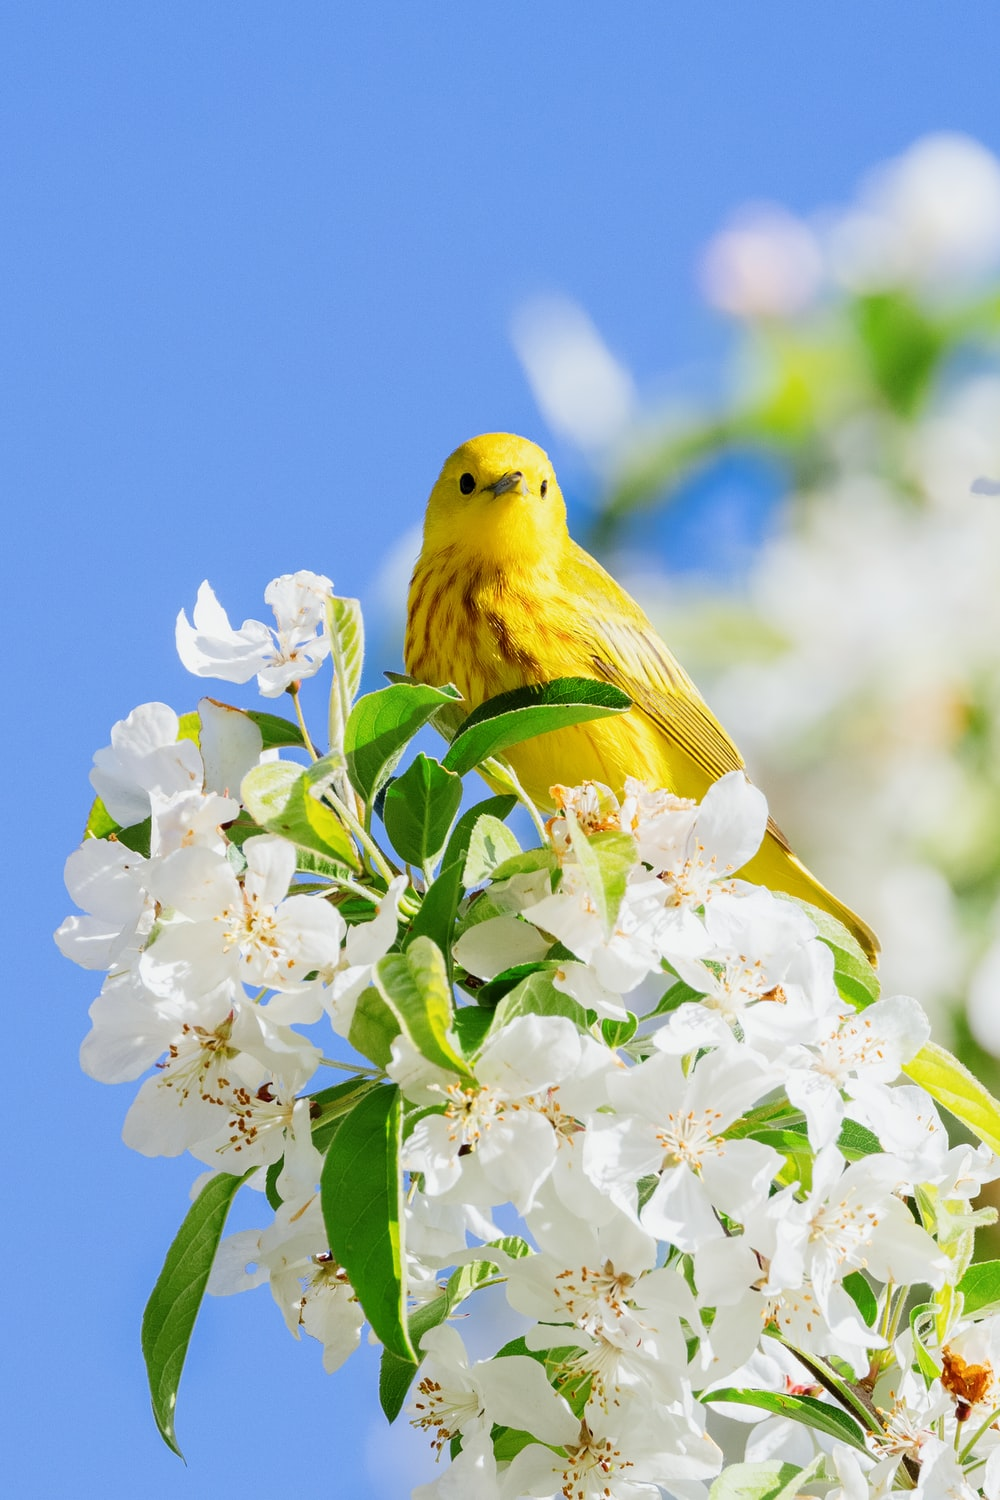 yellow bird perched on white flower